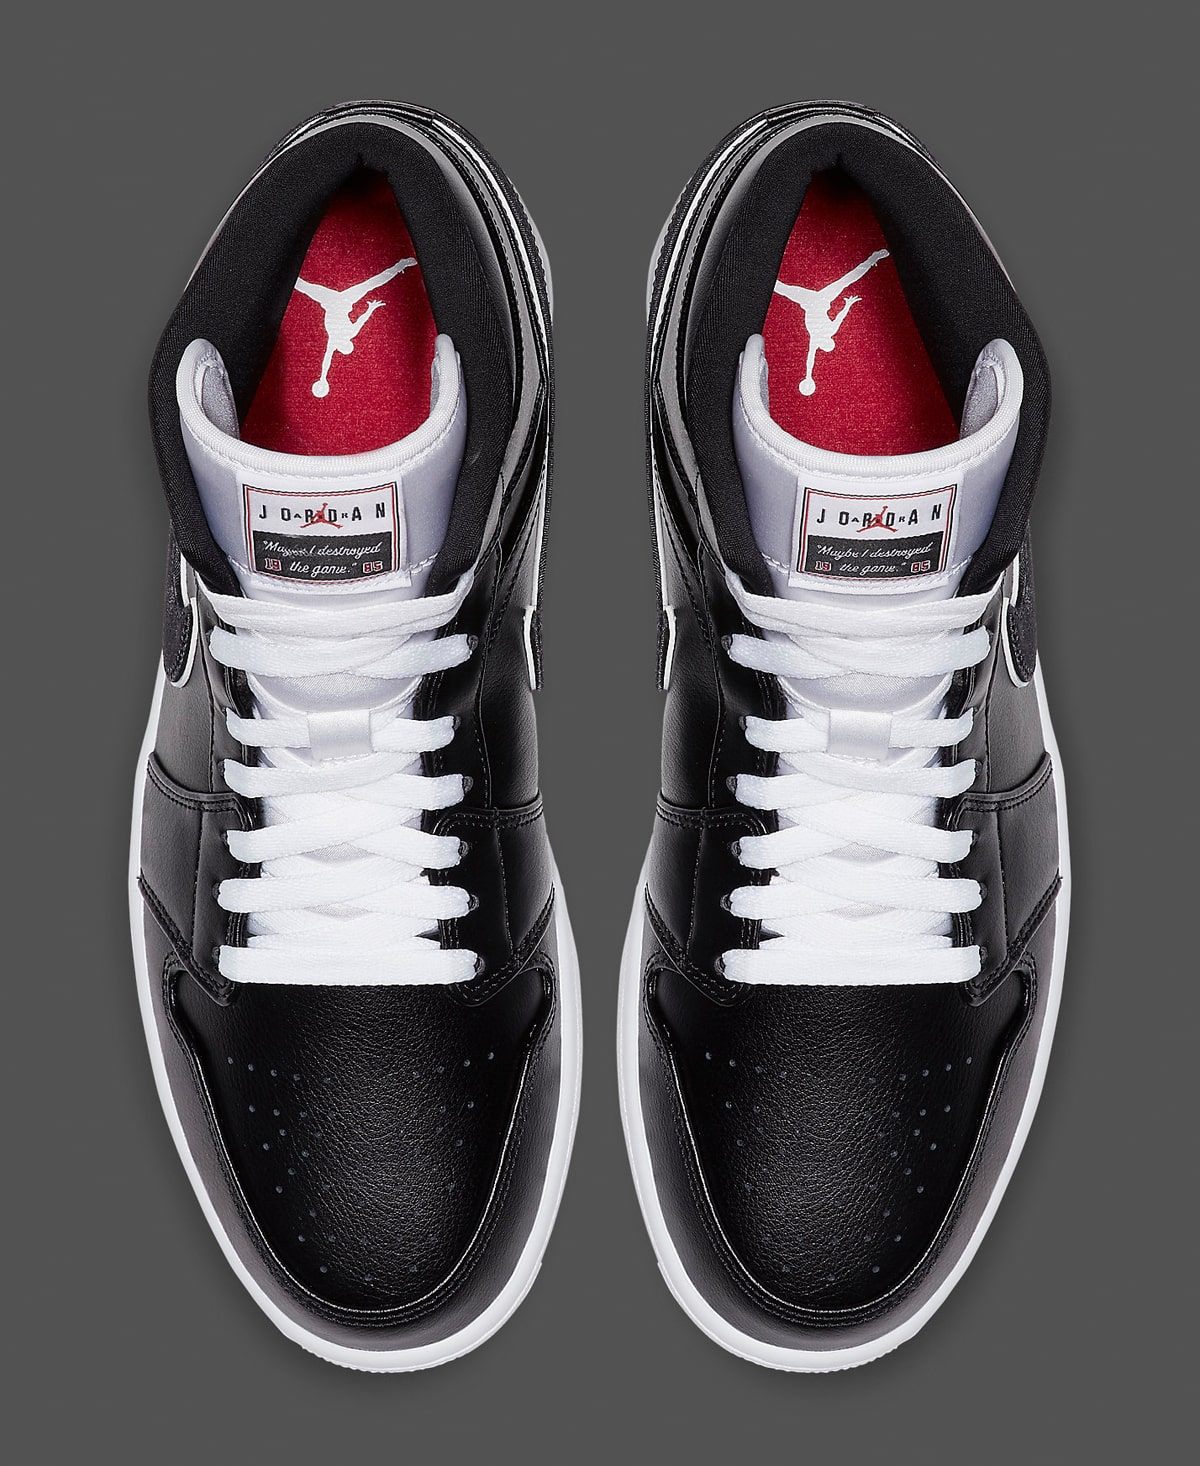 new style a4900 99dac This Mid Comes Inspired by a Memorable Air Jordan Campaign from 2008 ...